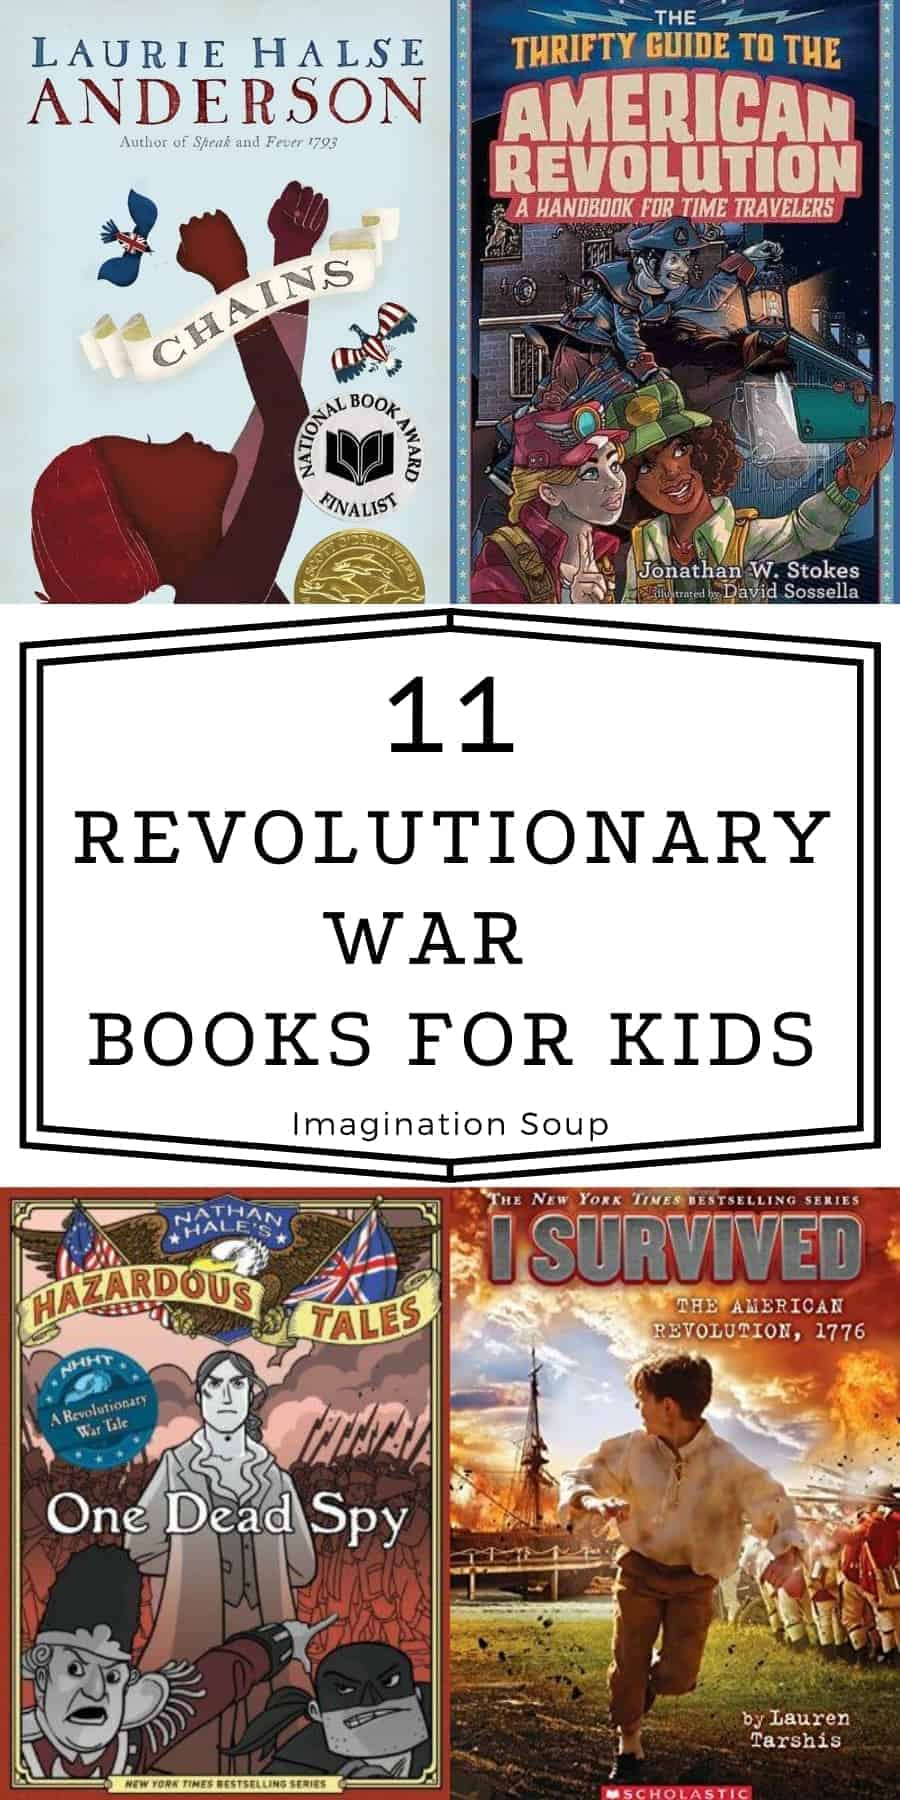 children's chapter books about The Revolutionary War